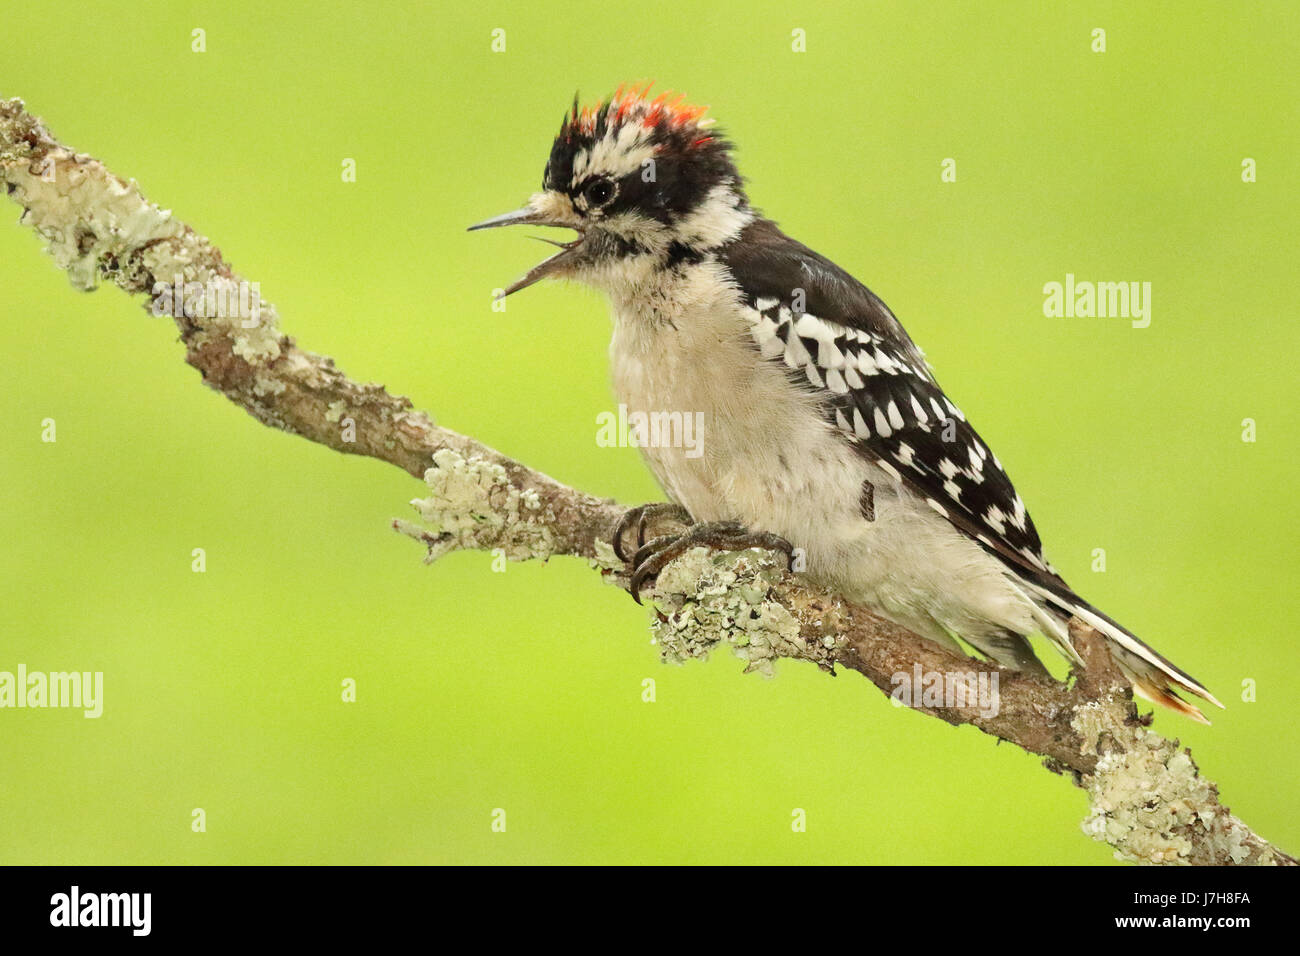 A Downy Woodpecker calling loudly from a forest perch during spring in Wisconsin - Stock Image